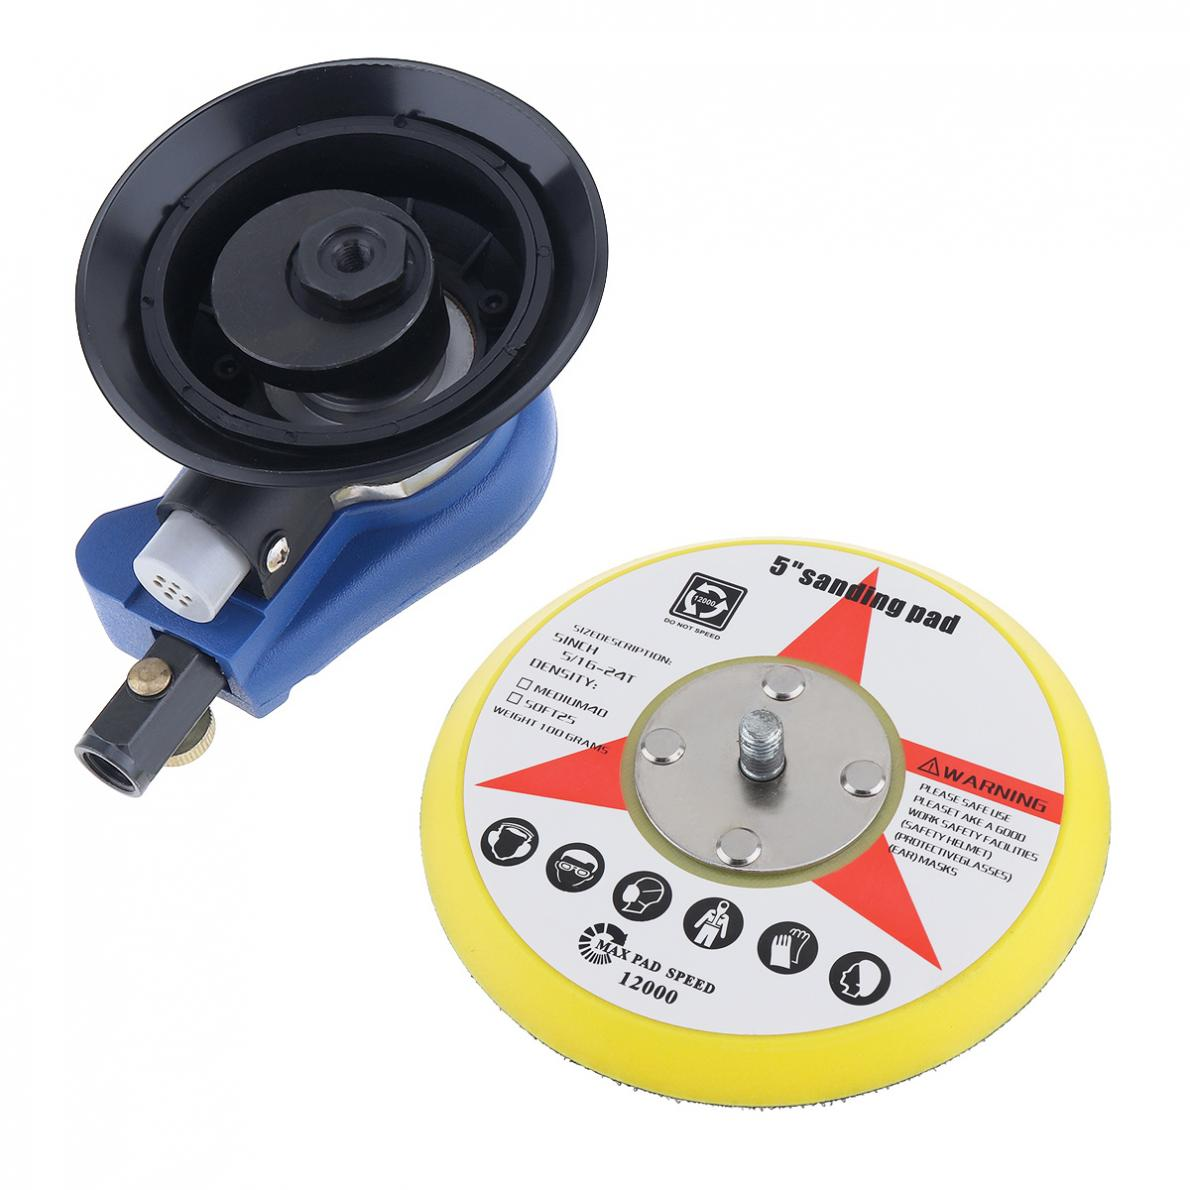 Image 4 - 5 Inch Matte Surface Pneumatic Polishing Machine Random Orbital with Sander Pad for Cars Polishing / Grinding / Waxing-in Pneumatic Tools from Tools on